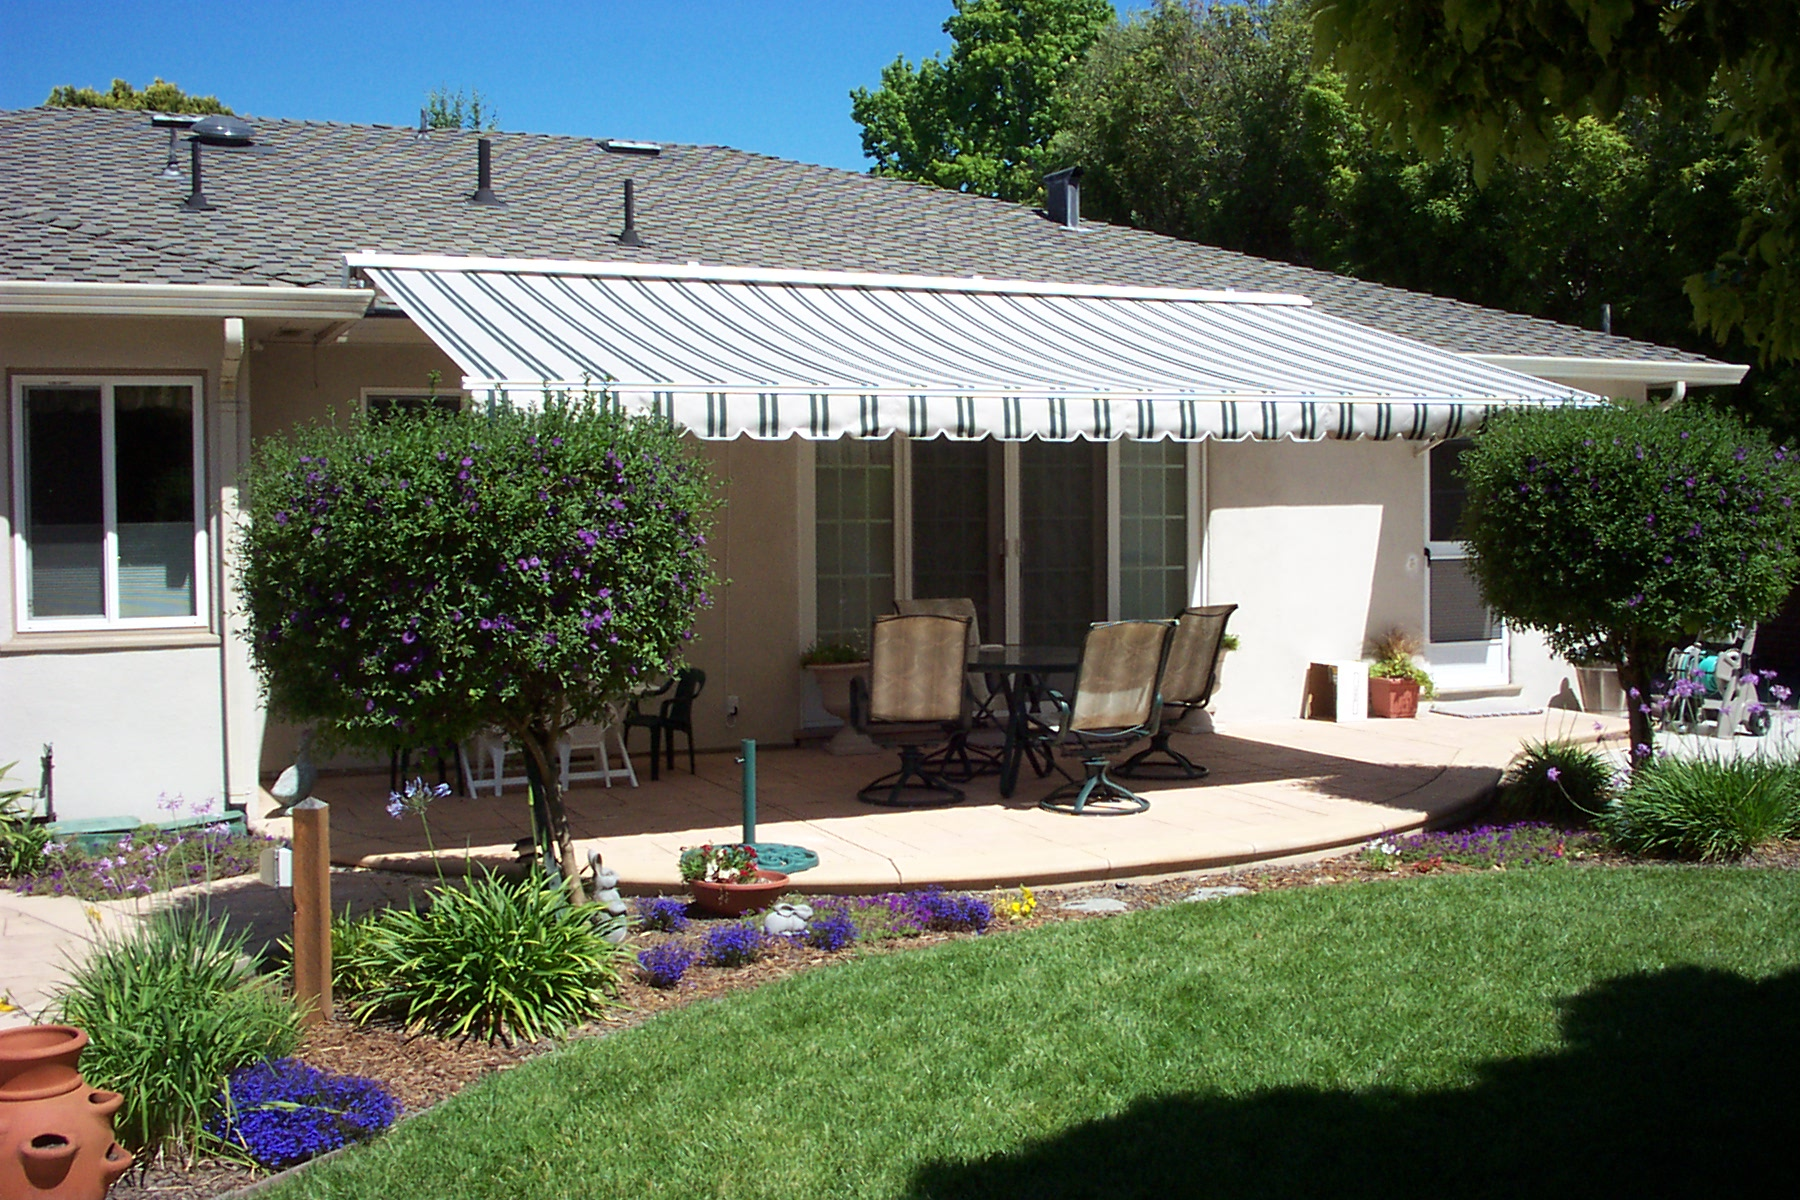 Residential Awnings - ShadeTree Retractable Awnings Provide